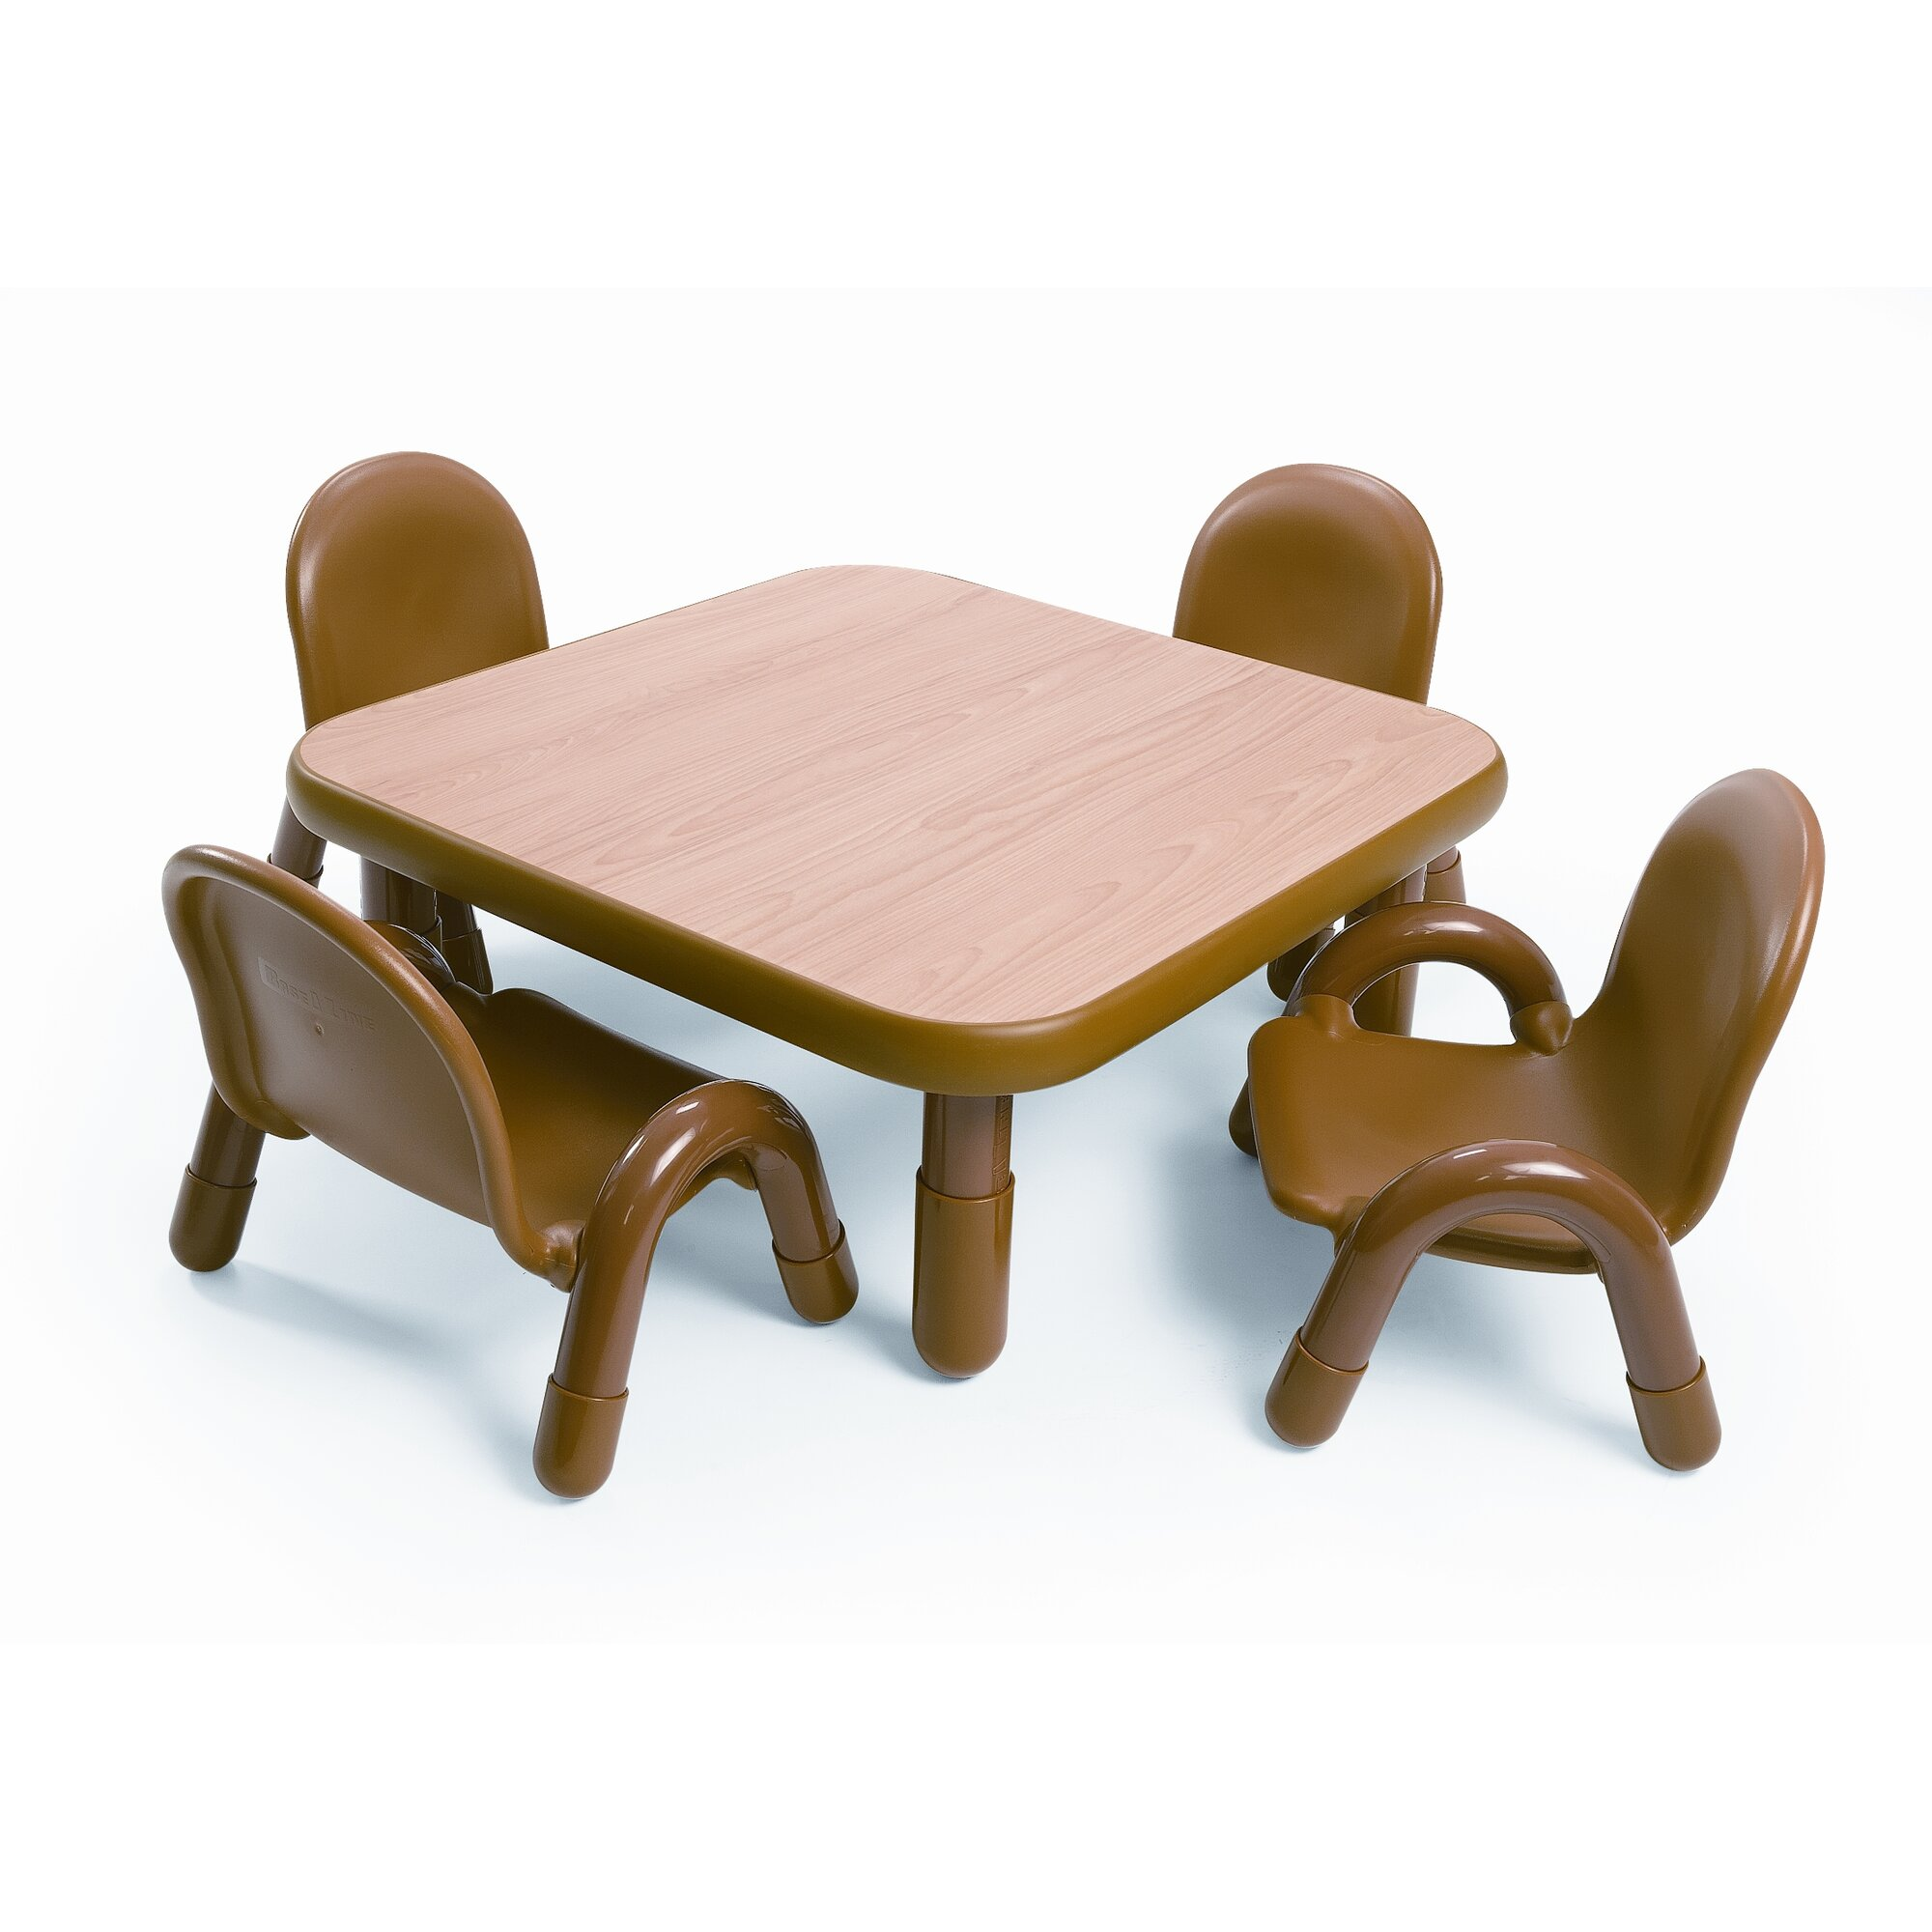 Toddler table and chair - Square Baseline Toddler Table And Chair Set In Natural